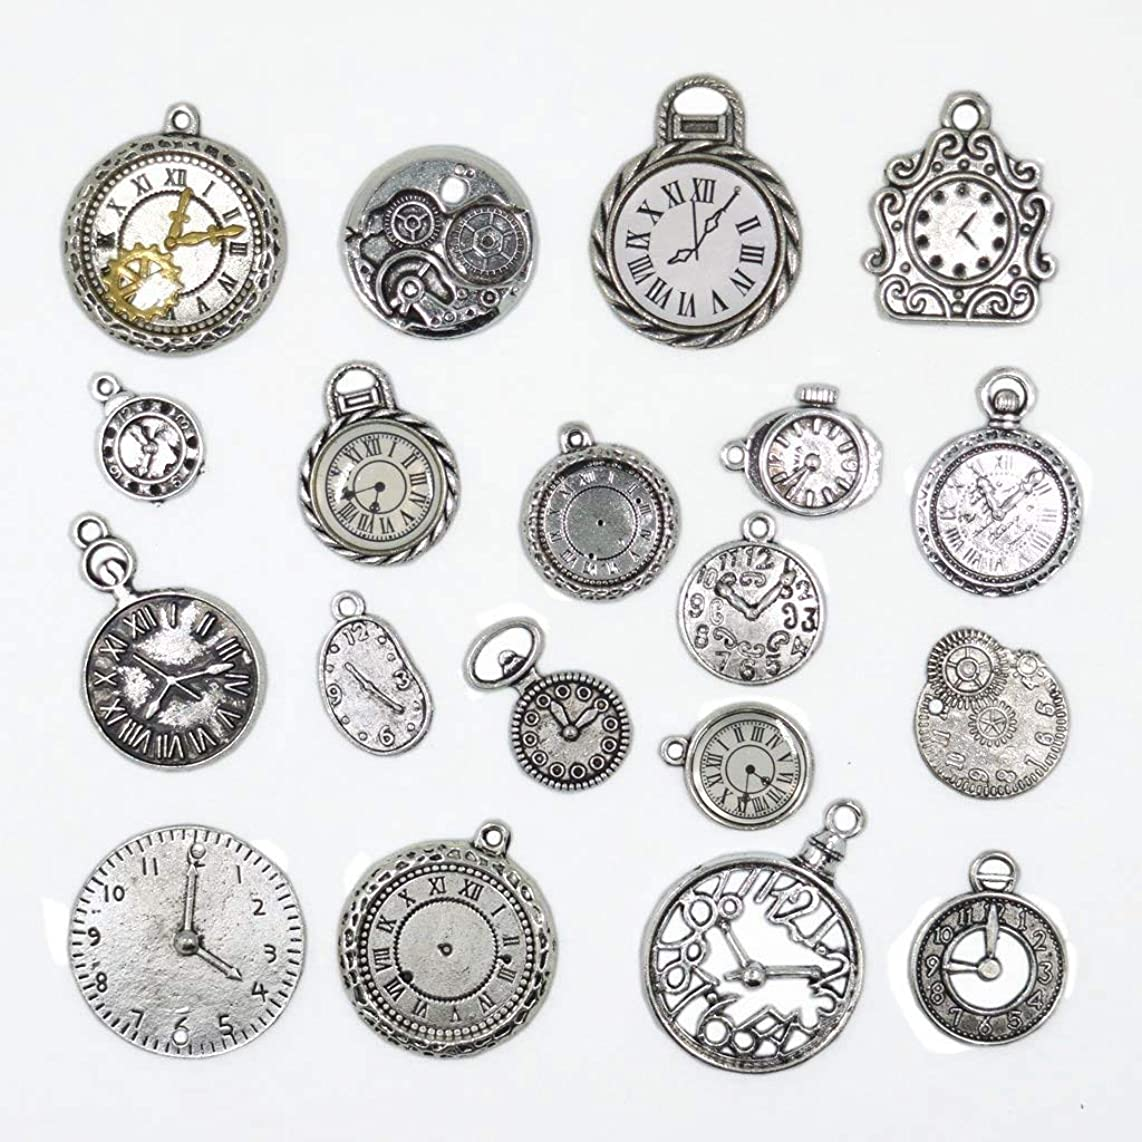 20pcs Mixed Antiqued Silver Charms Clock Face Charm Pendant, DIY Crafts, Gears, Jewelry Making, Steampunk Pendants